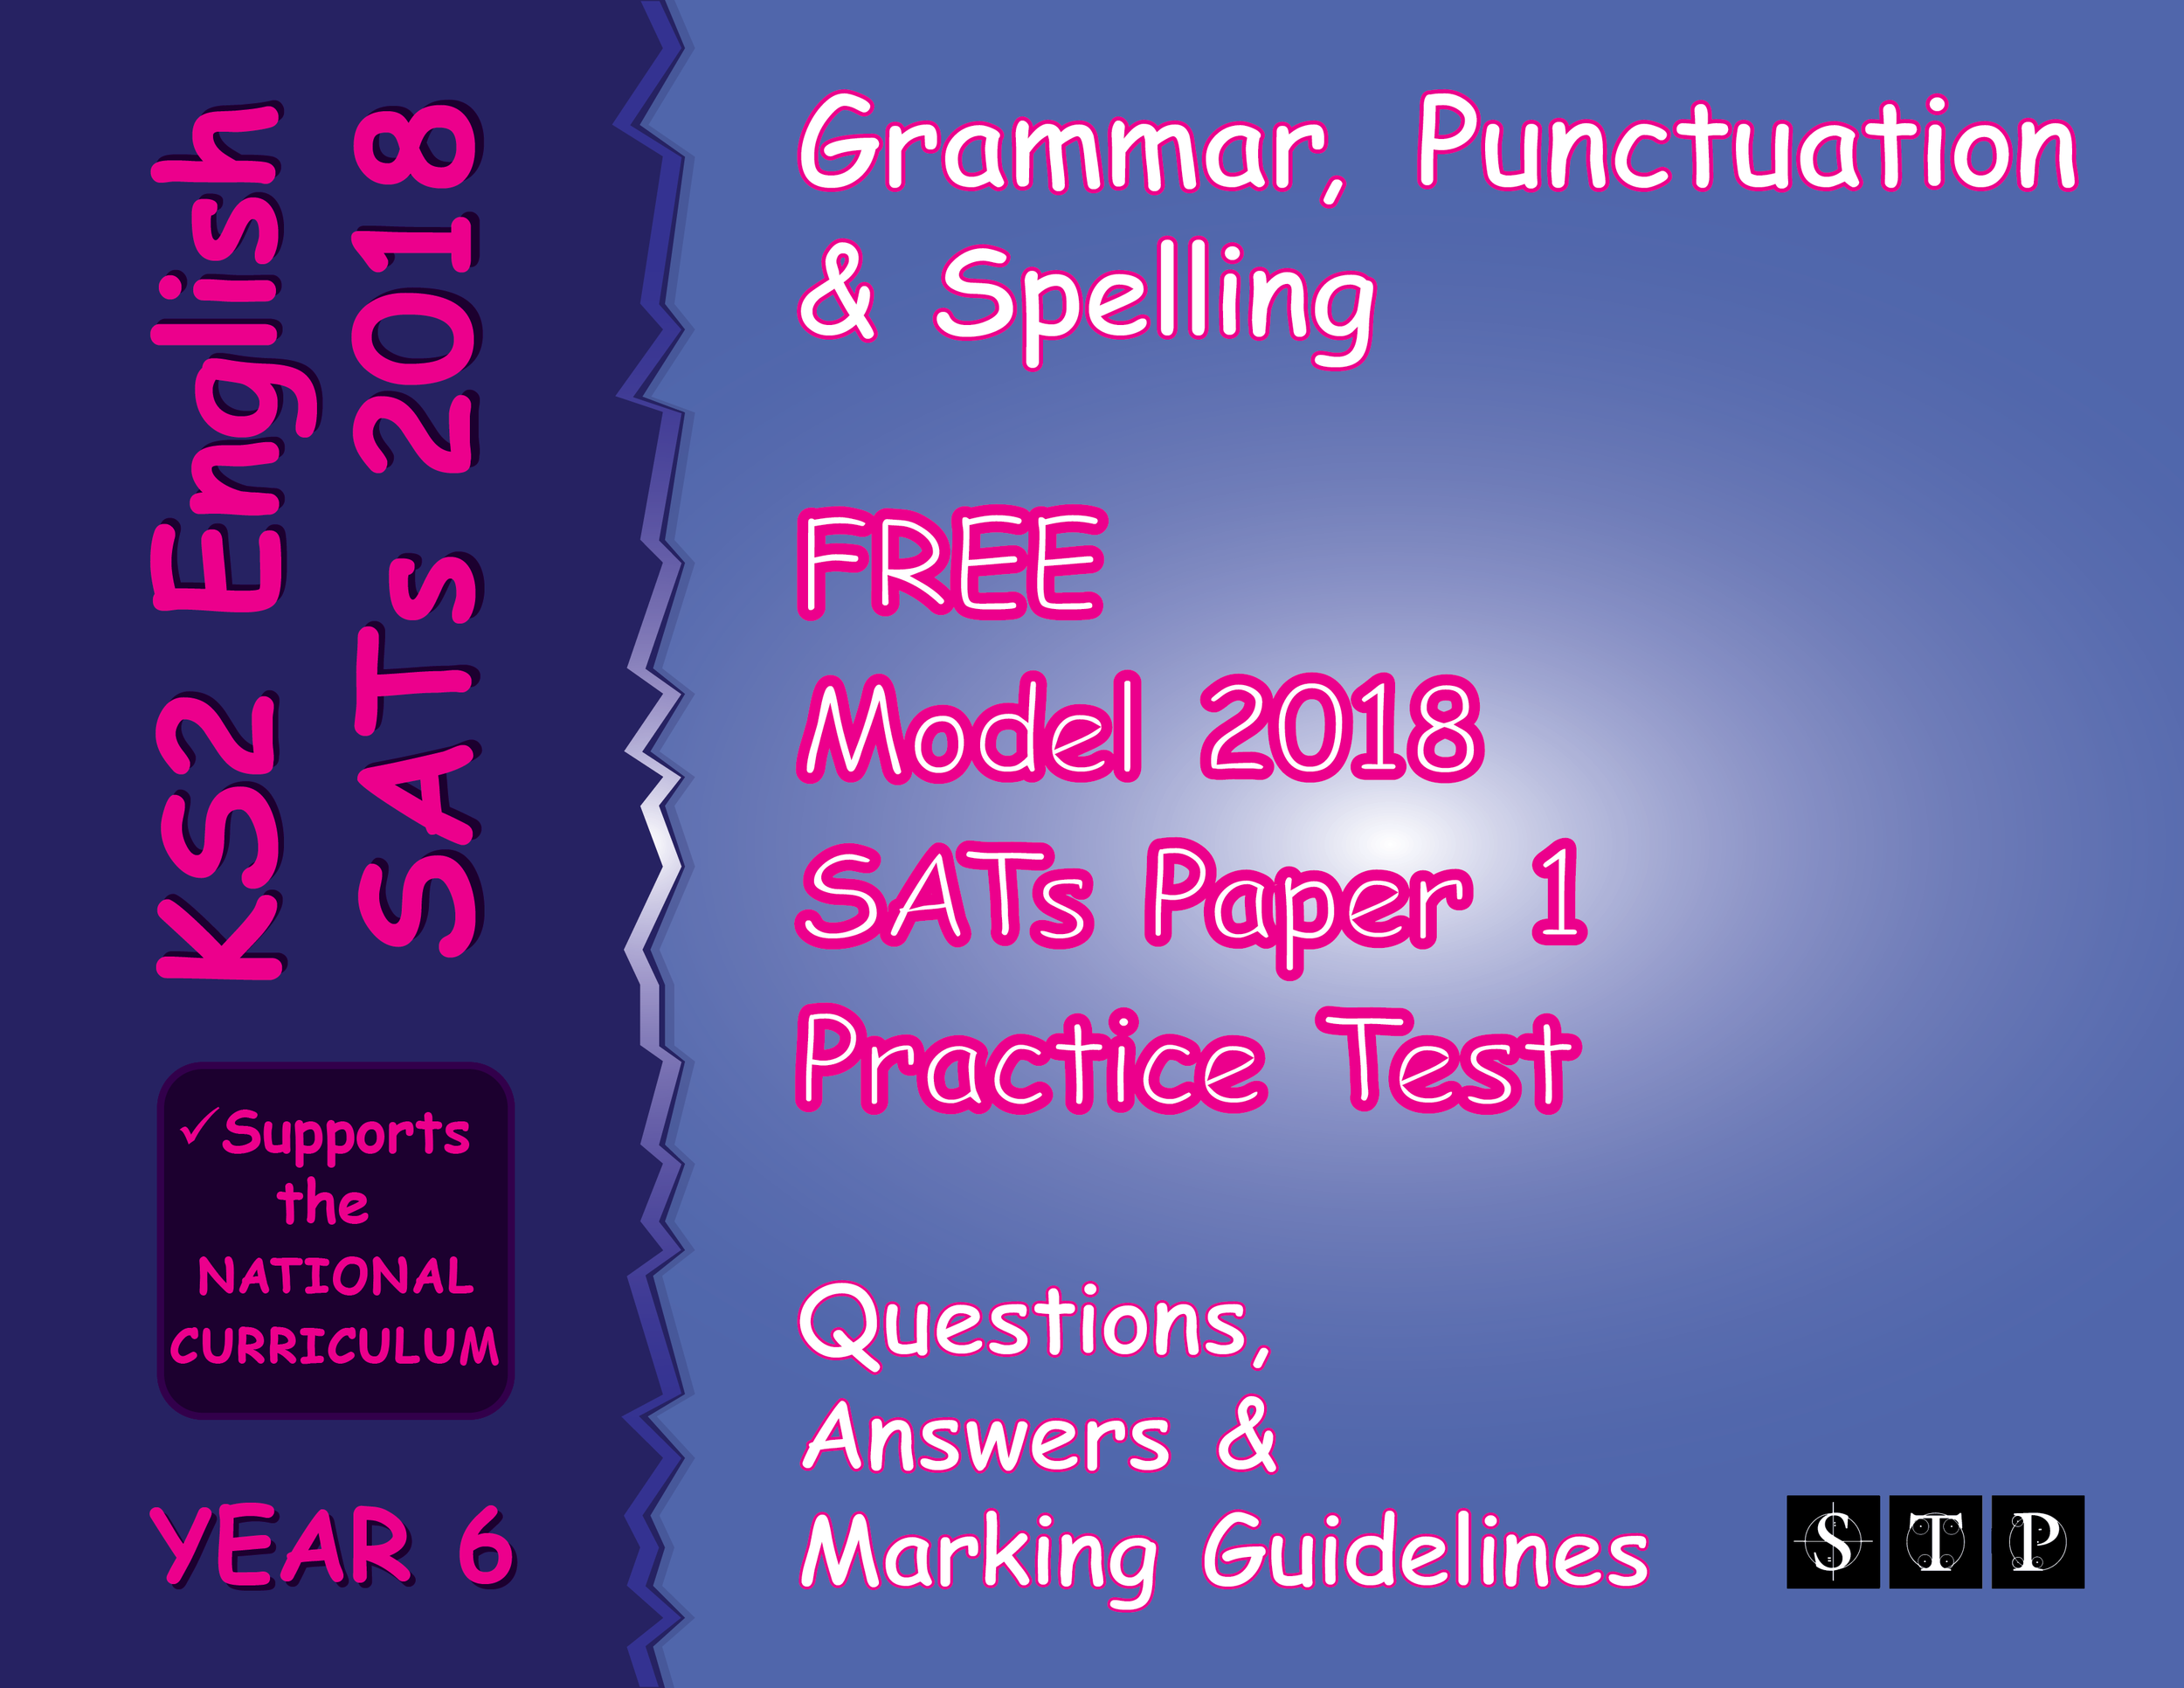 Free 2018 KS2 SATs English Paper 1 Test - VIEWABLE, DOWNLOADABLE & PRINTABLE PDFs!